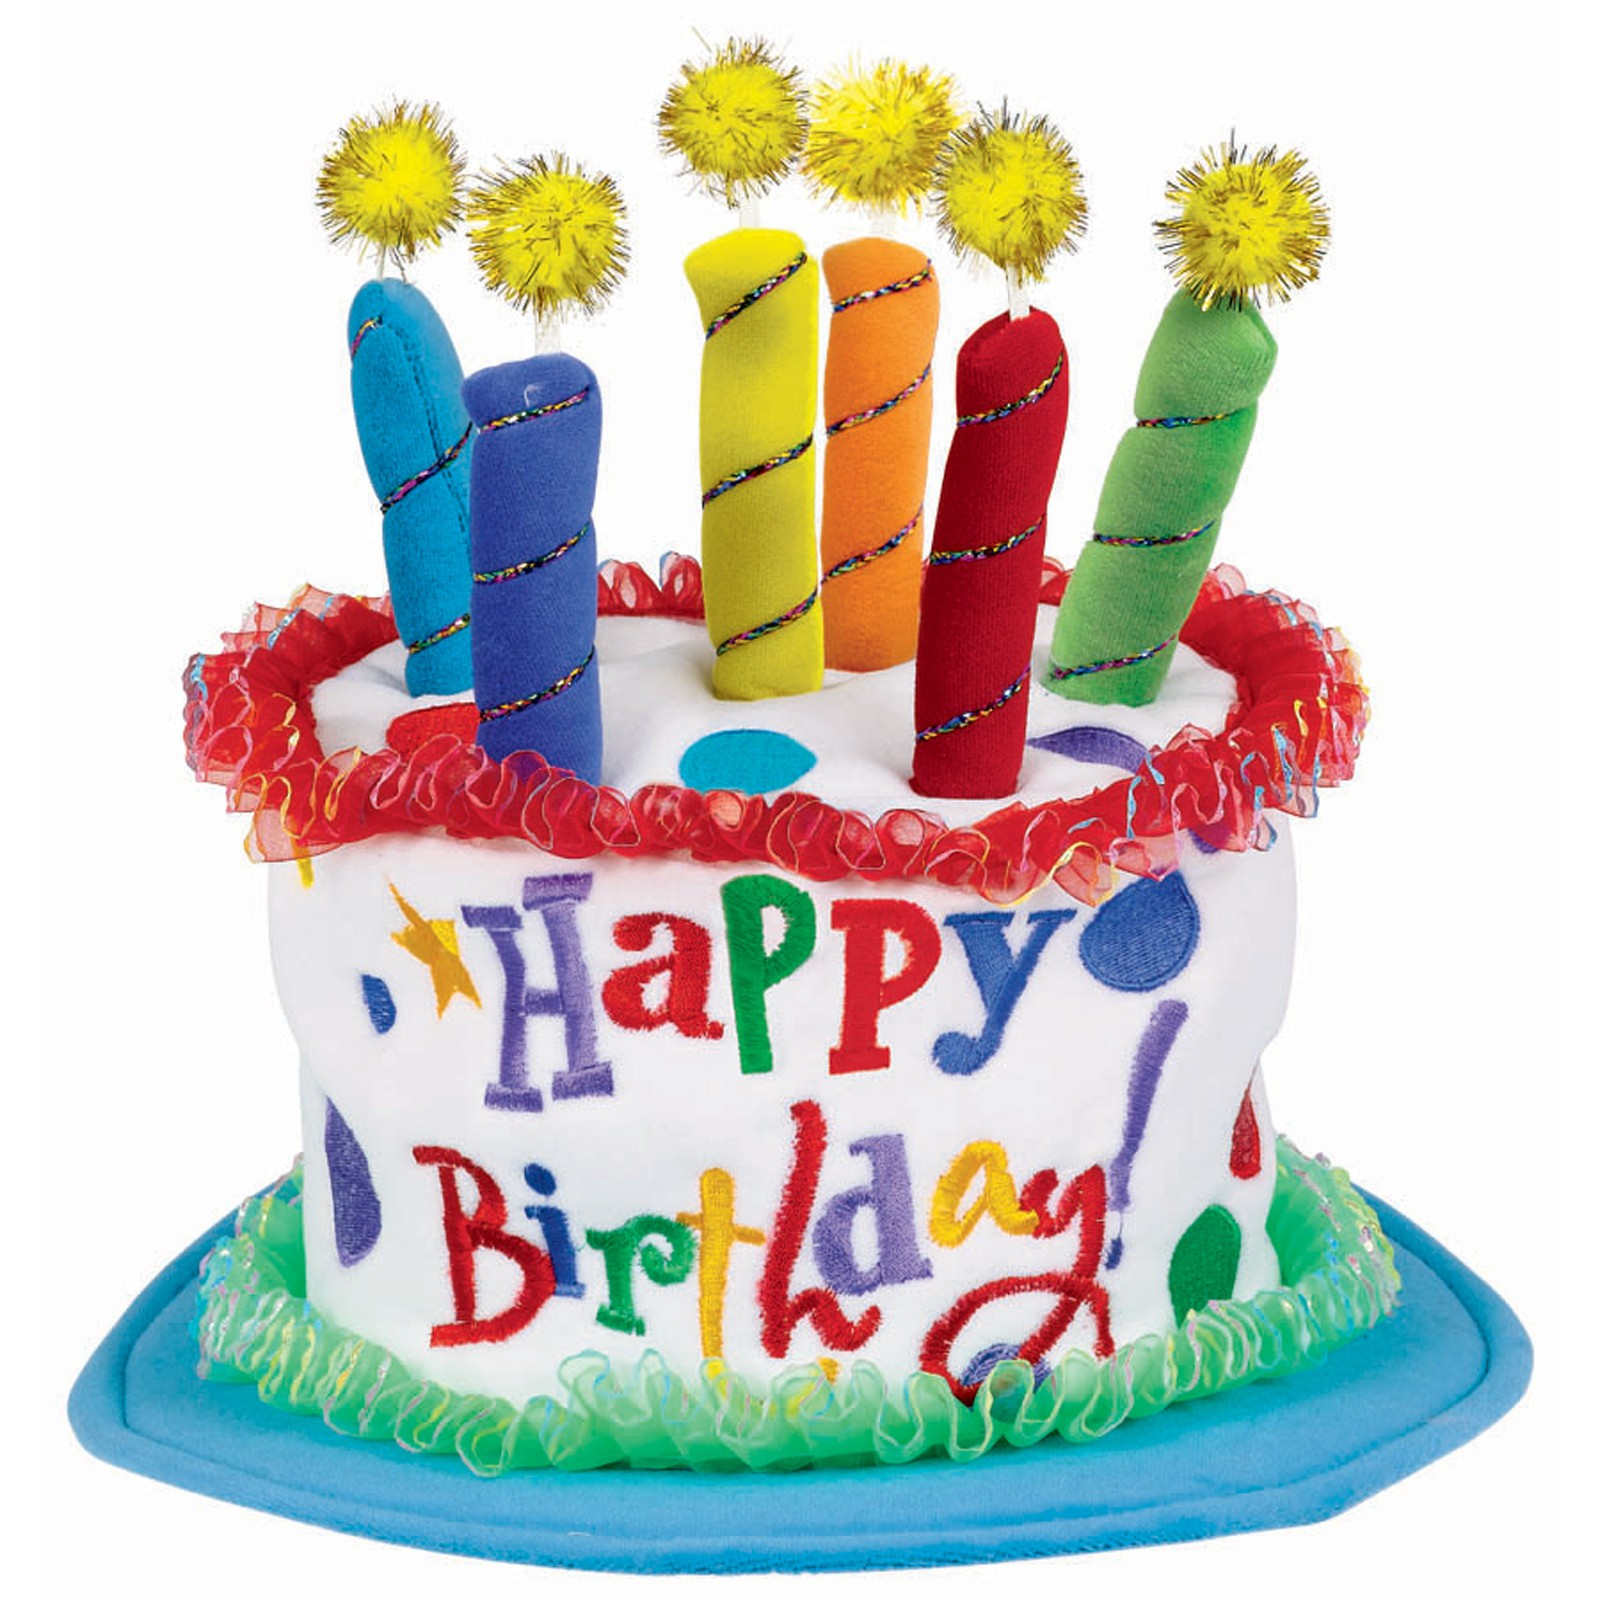 Birthday Cake Images Free Download Free Image Birthday Cake Download Free Clip Art Free Clip Art On